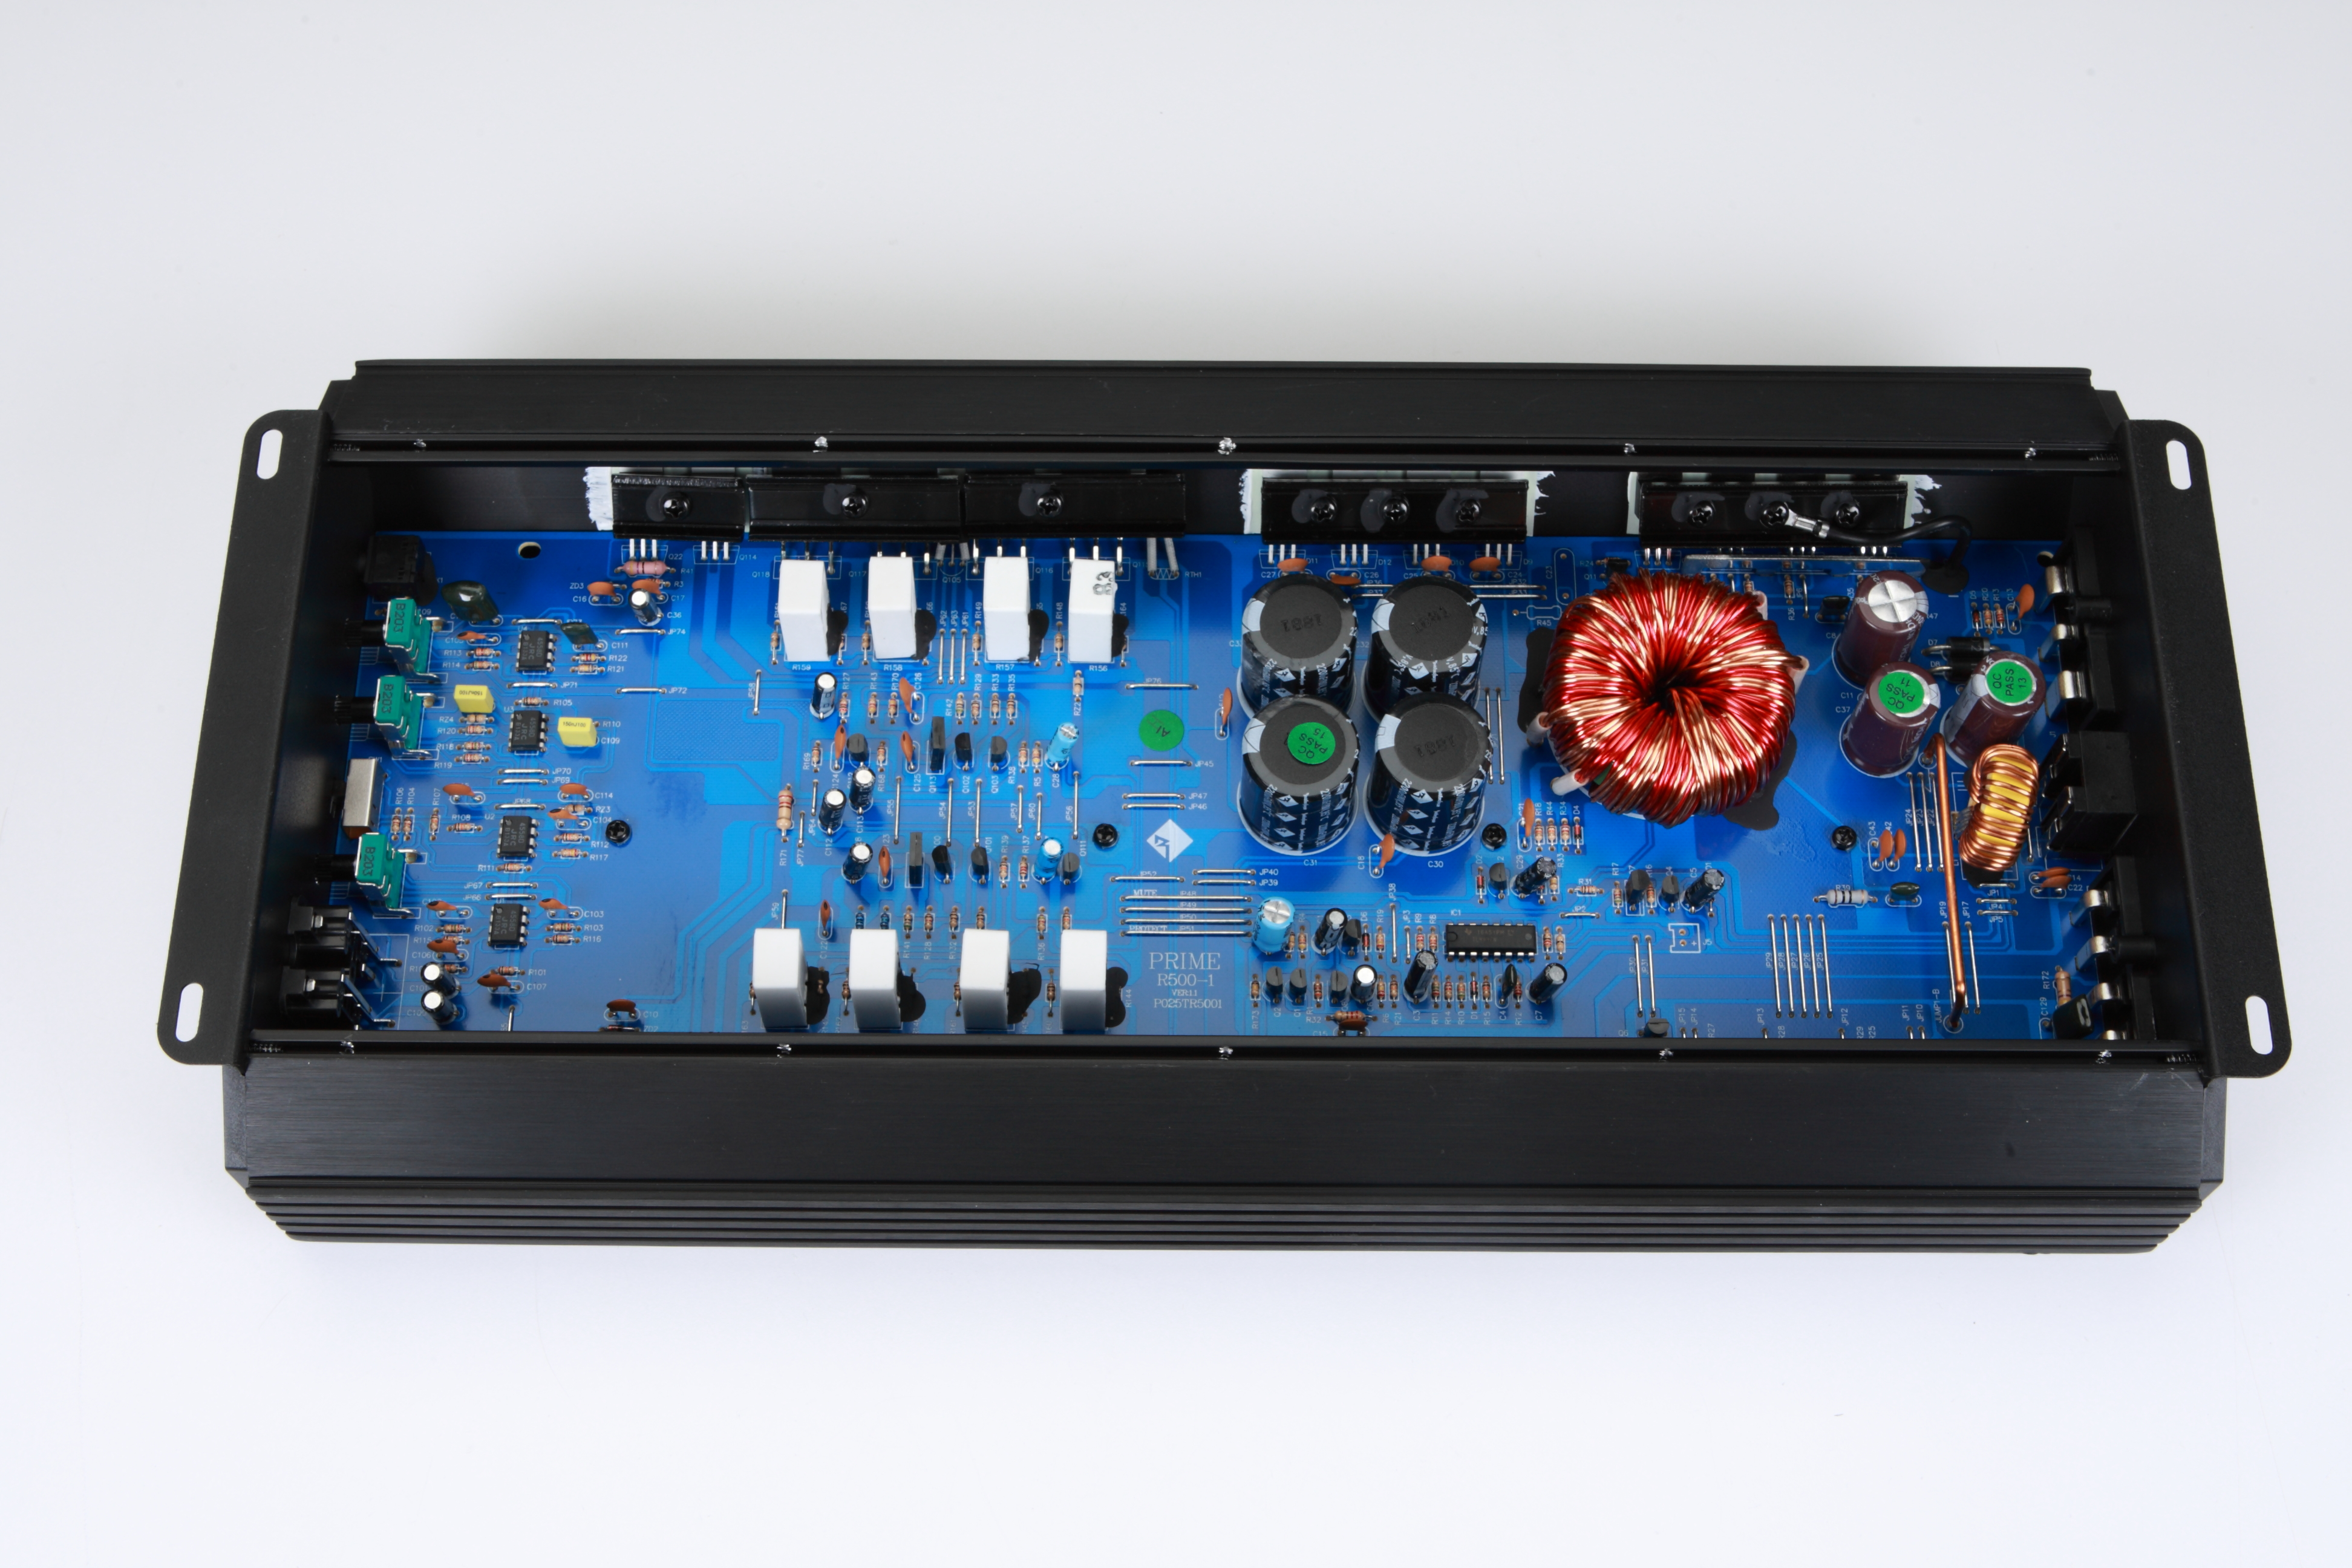 Why Some Amplifiers Cost More Than Others